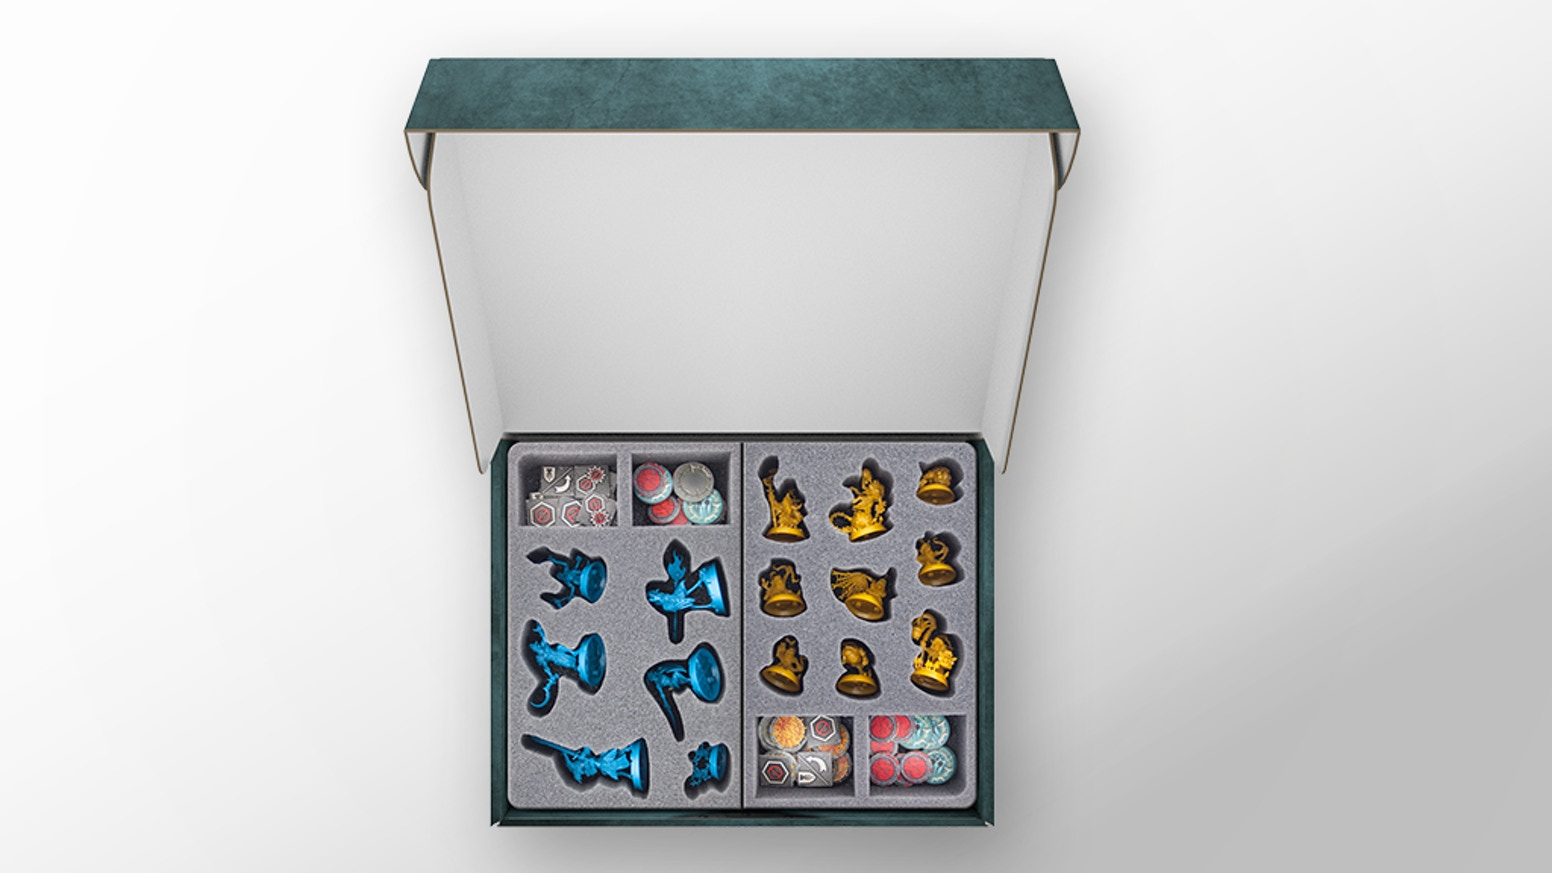 Protect, store and casually transport tabletop miniatures. We created an easy way to bring your Nightvault miniatures to safety.